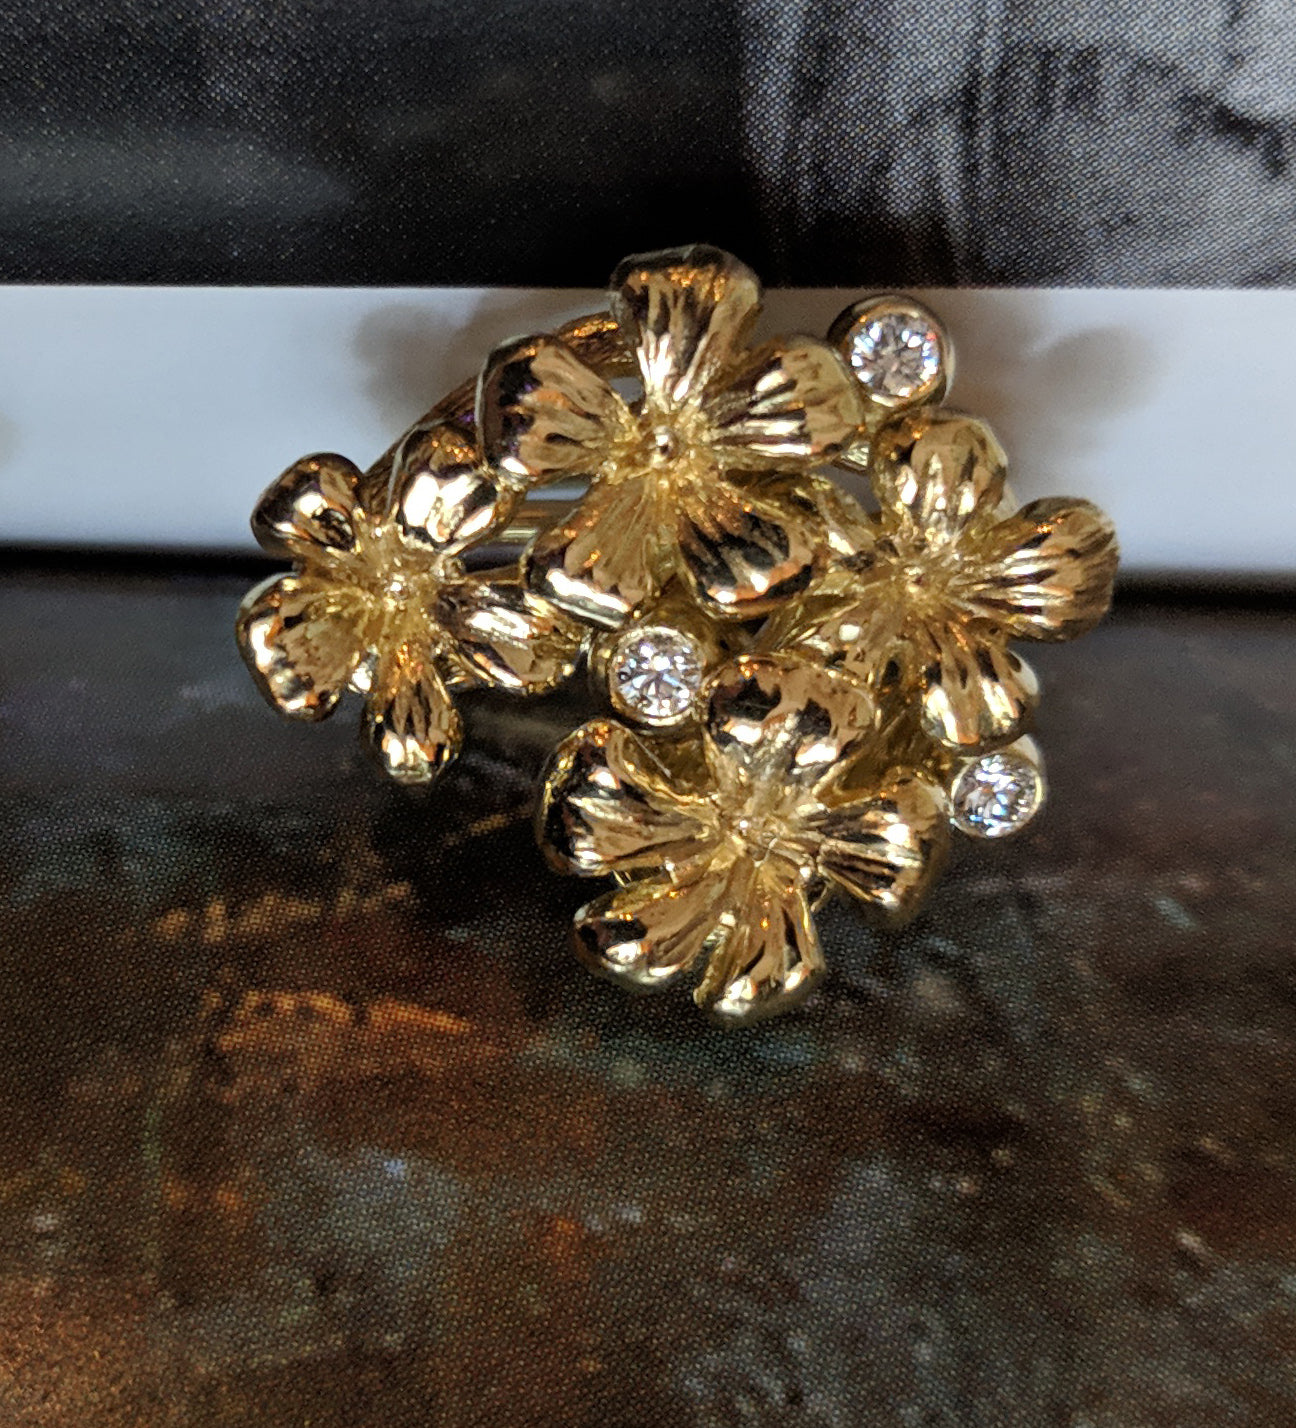 14 Karat Yellow Gold Transformer Plum Blossom Brooch with Diamonds